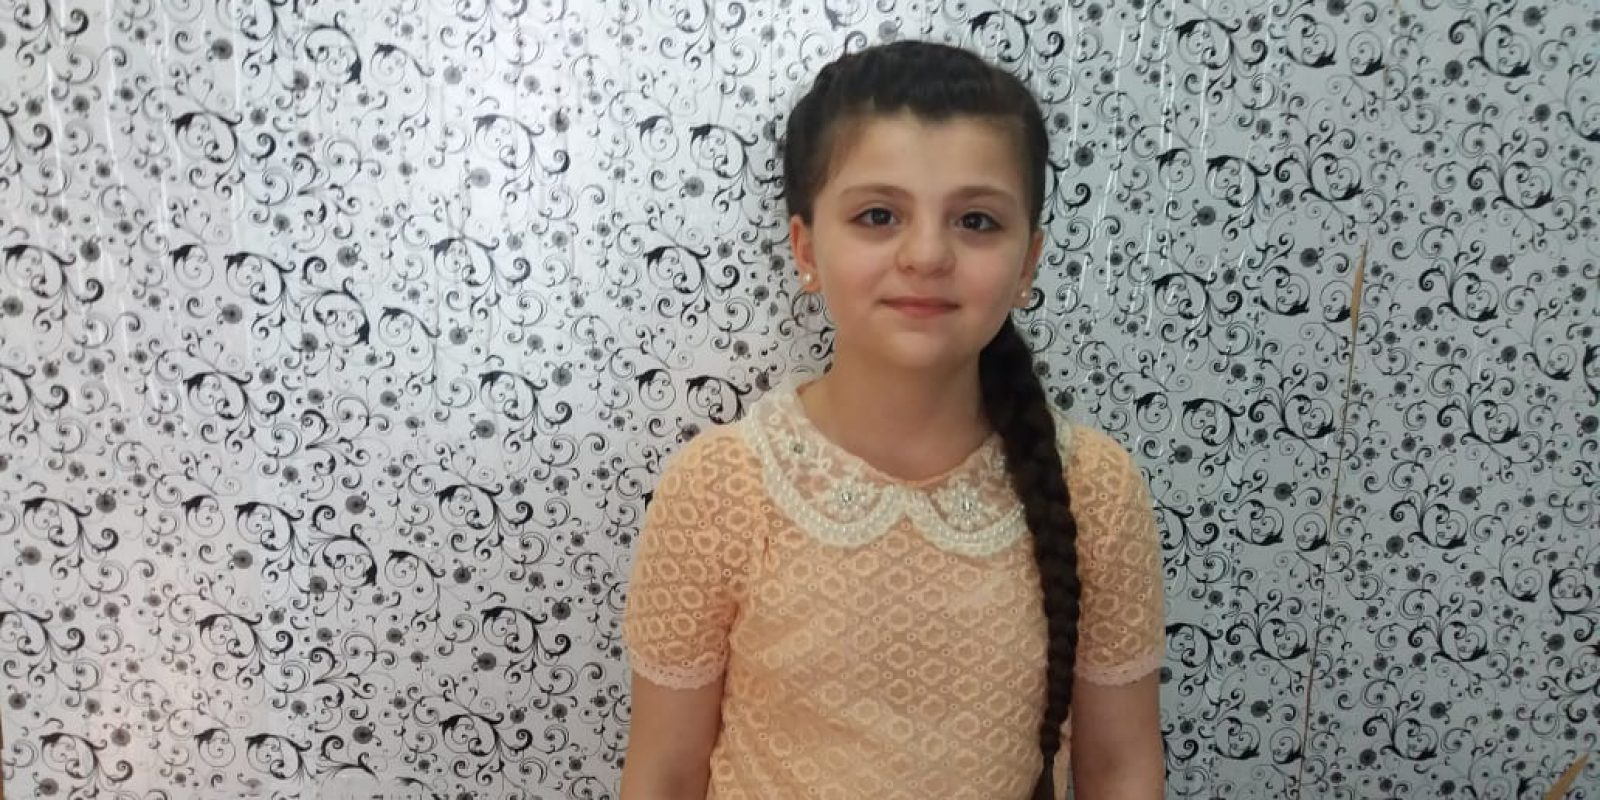 Malak*, 12, a grade four student at Nicolas Kluiters centre in Jbeil, This is her first year with JRS.